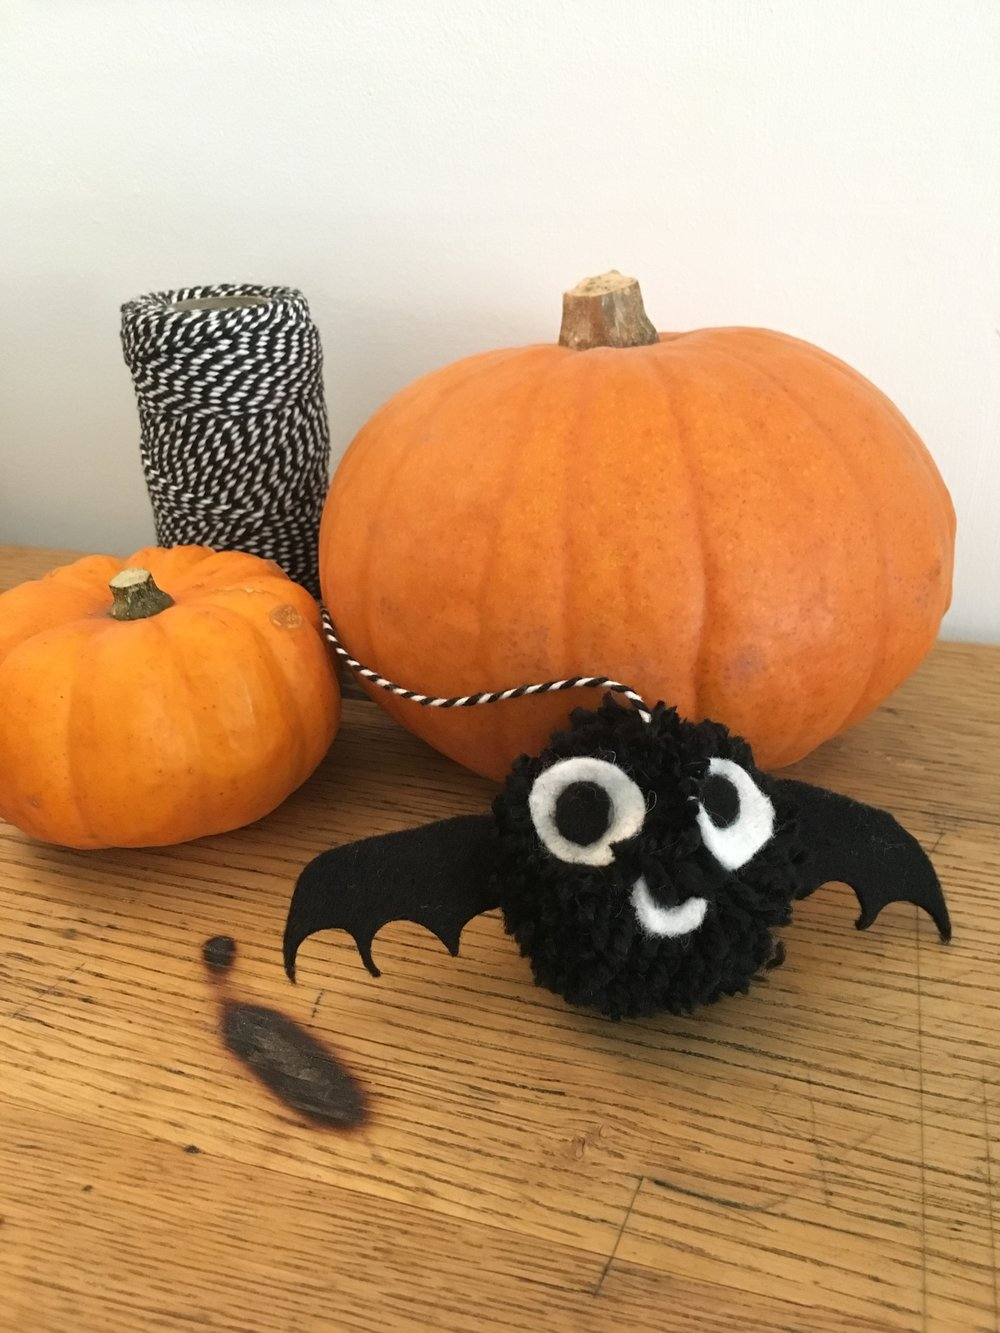 pom pom bat with pumpkins